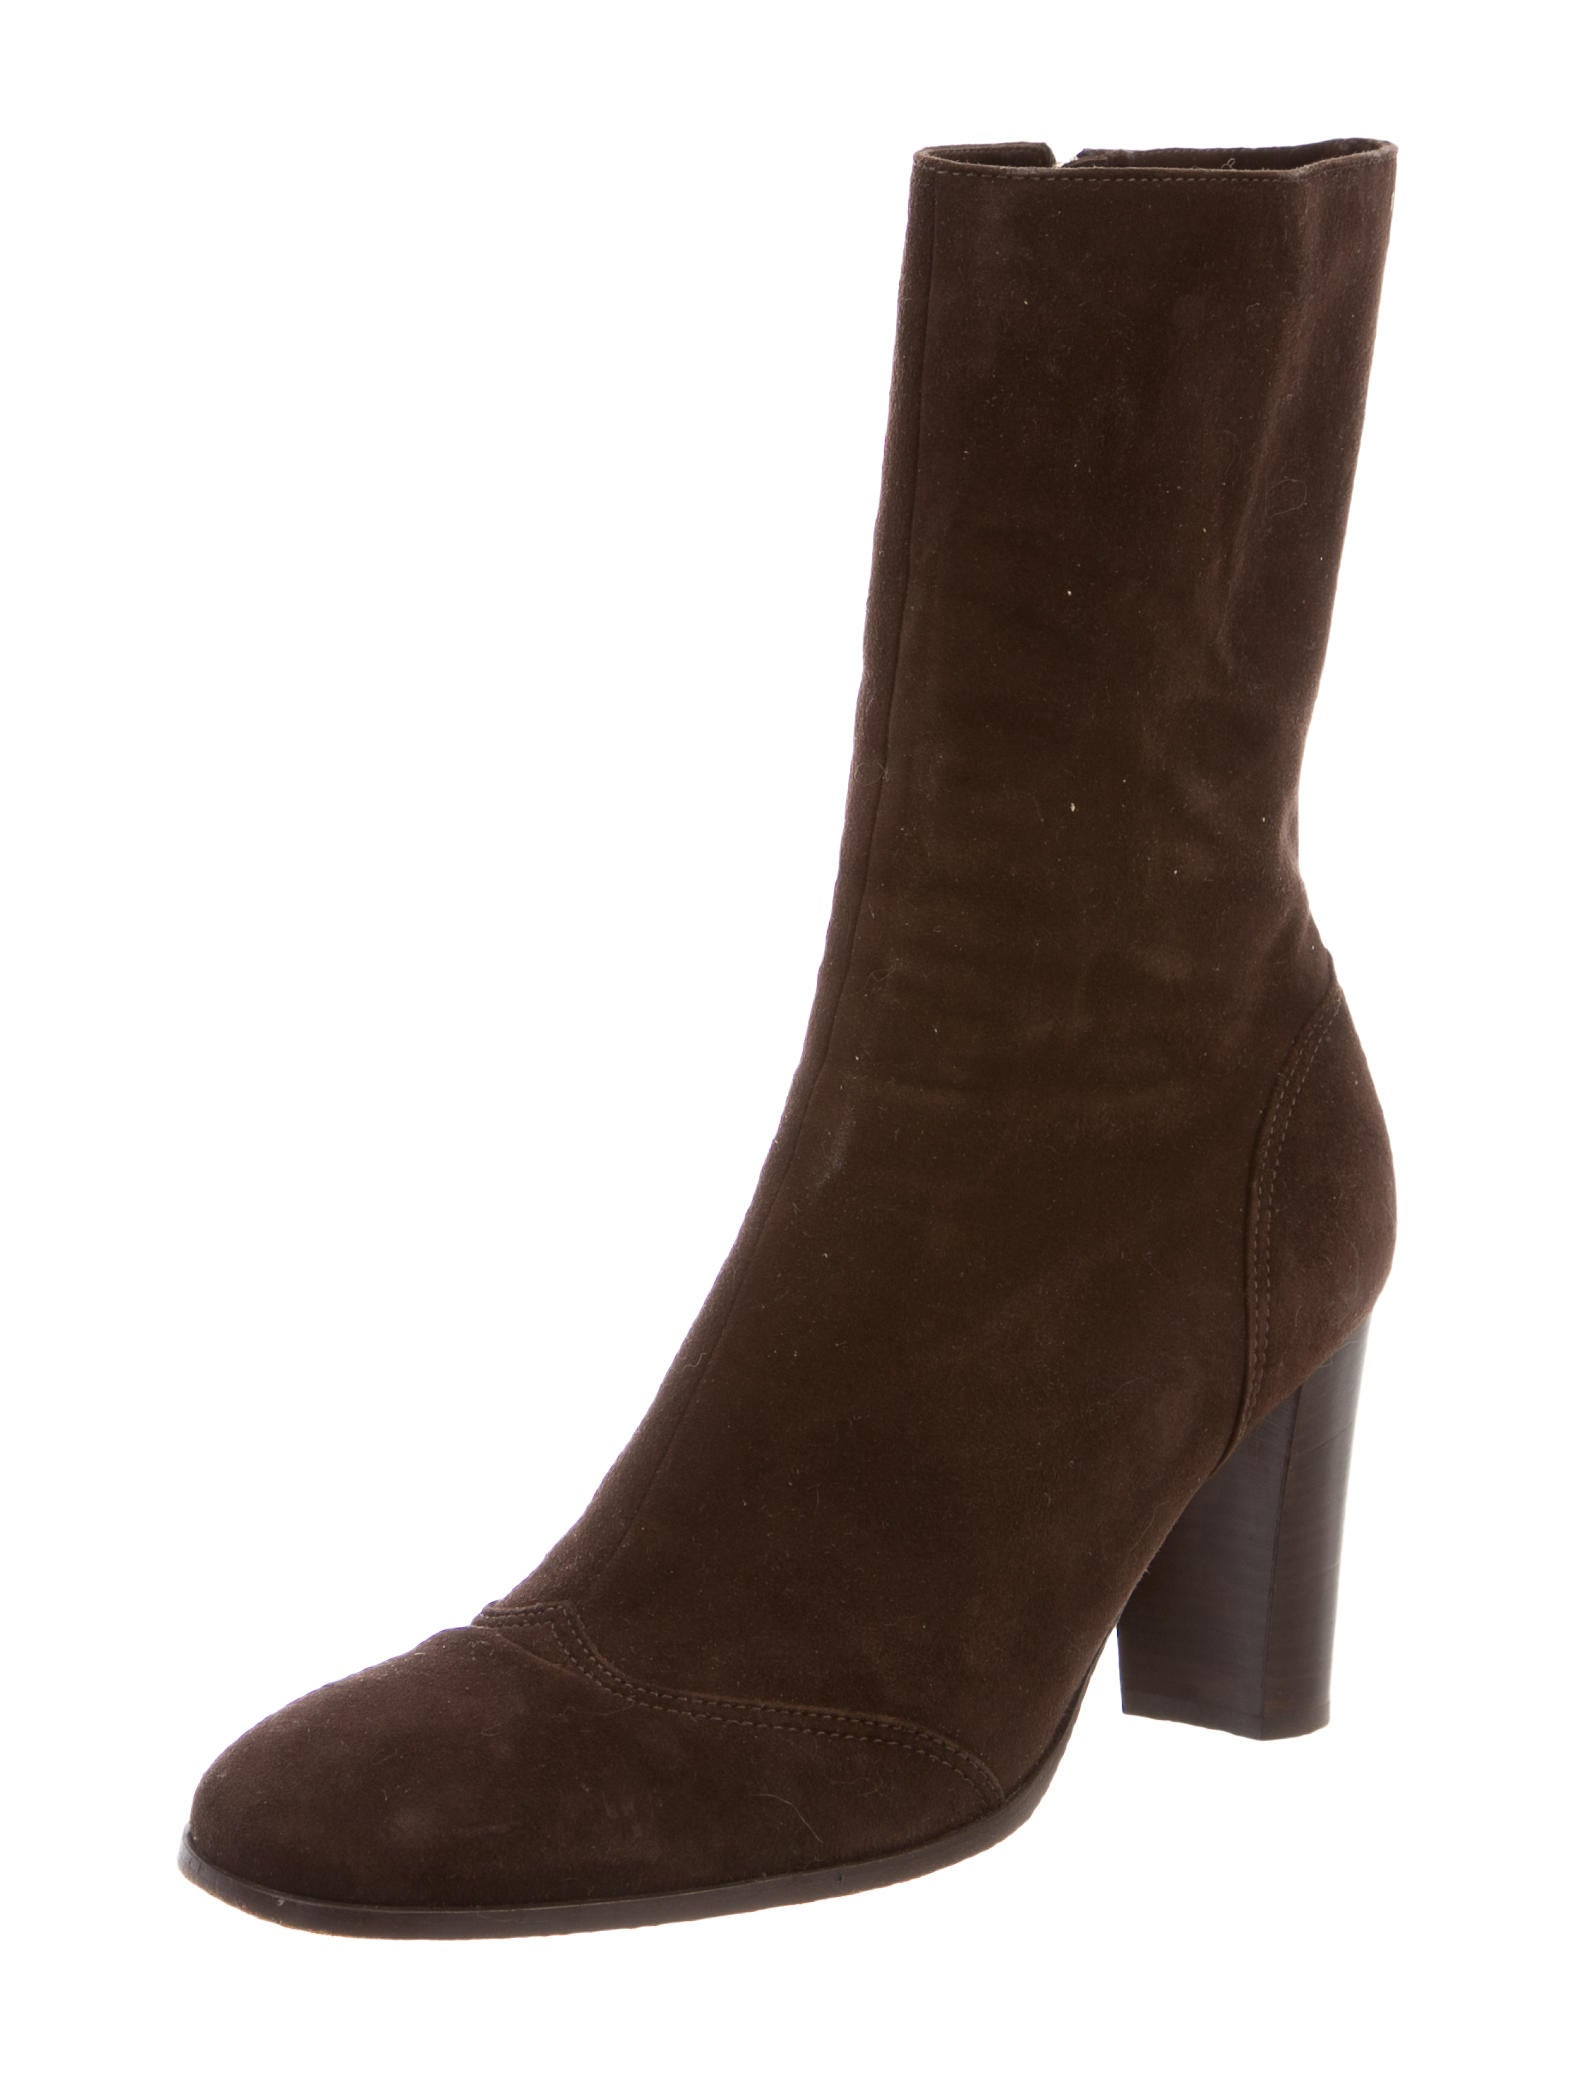 chanel suede toe ankle boots shoes cha124174